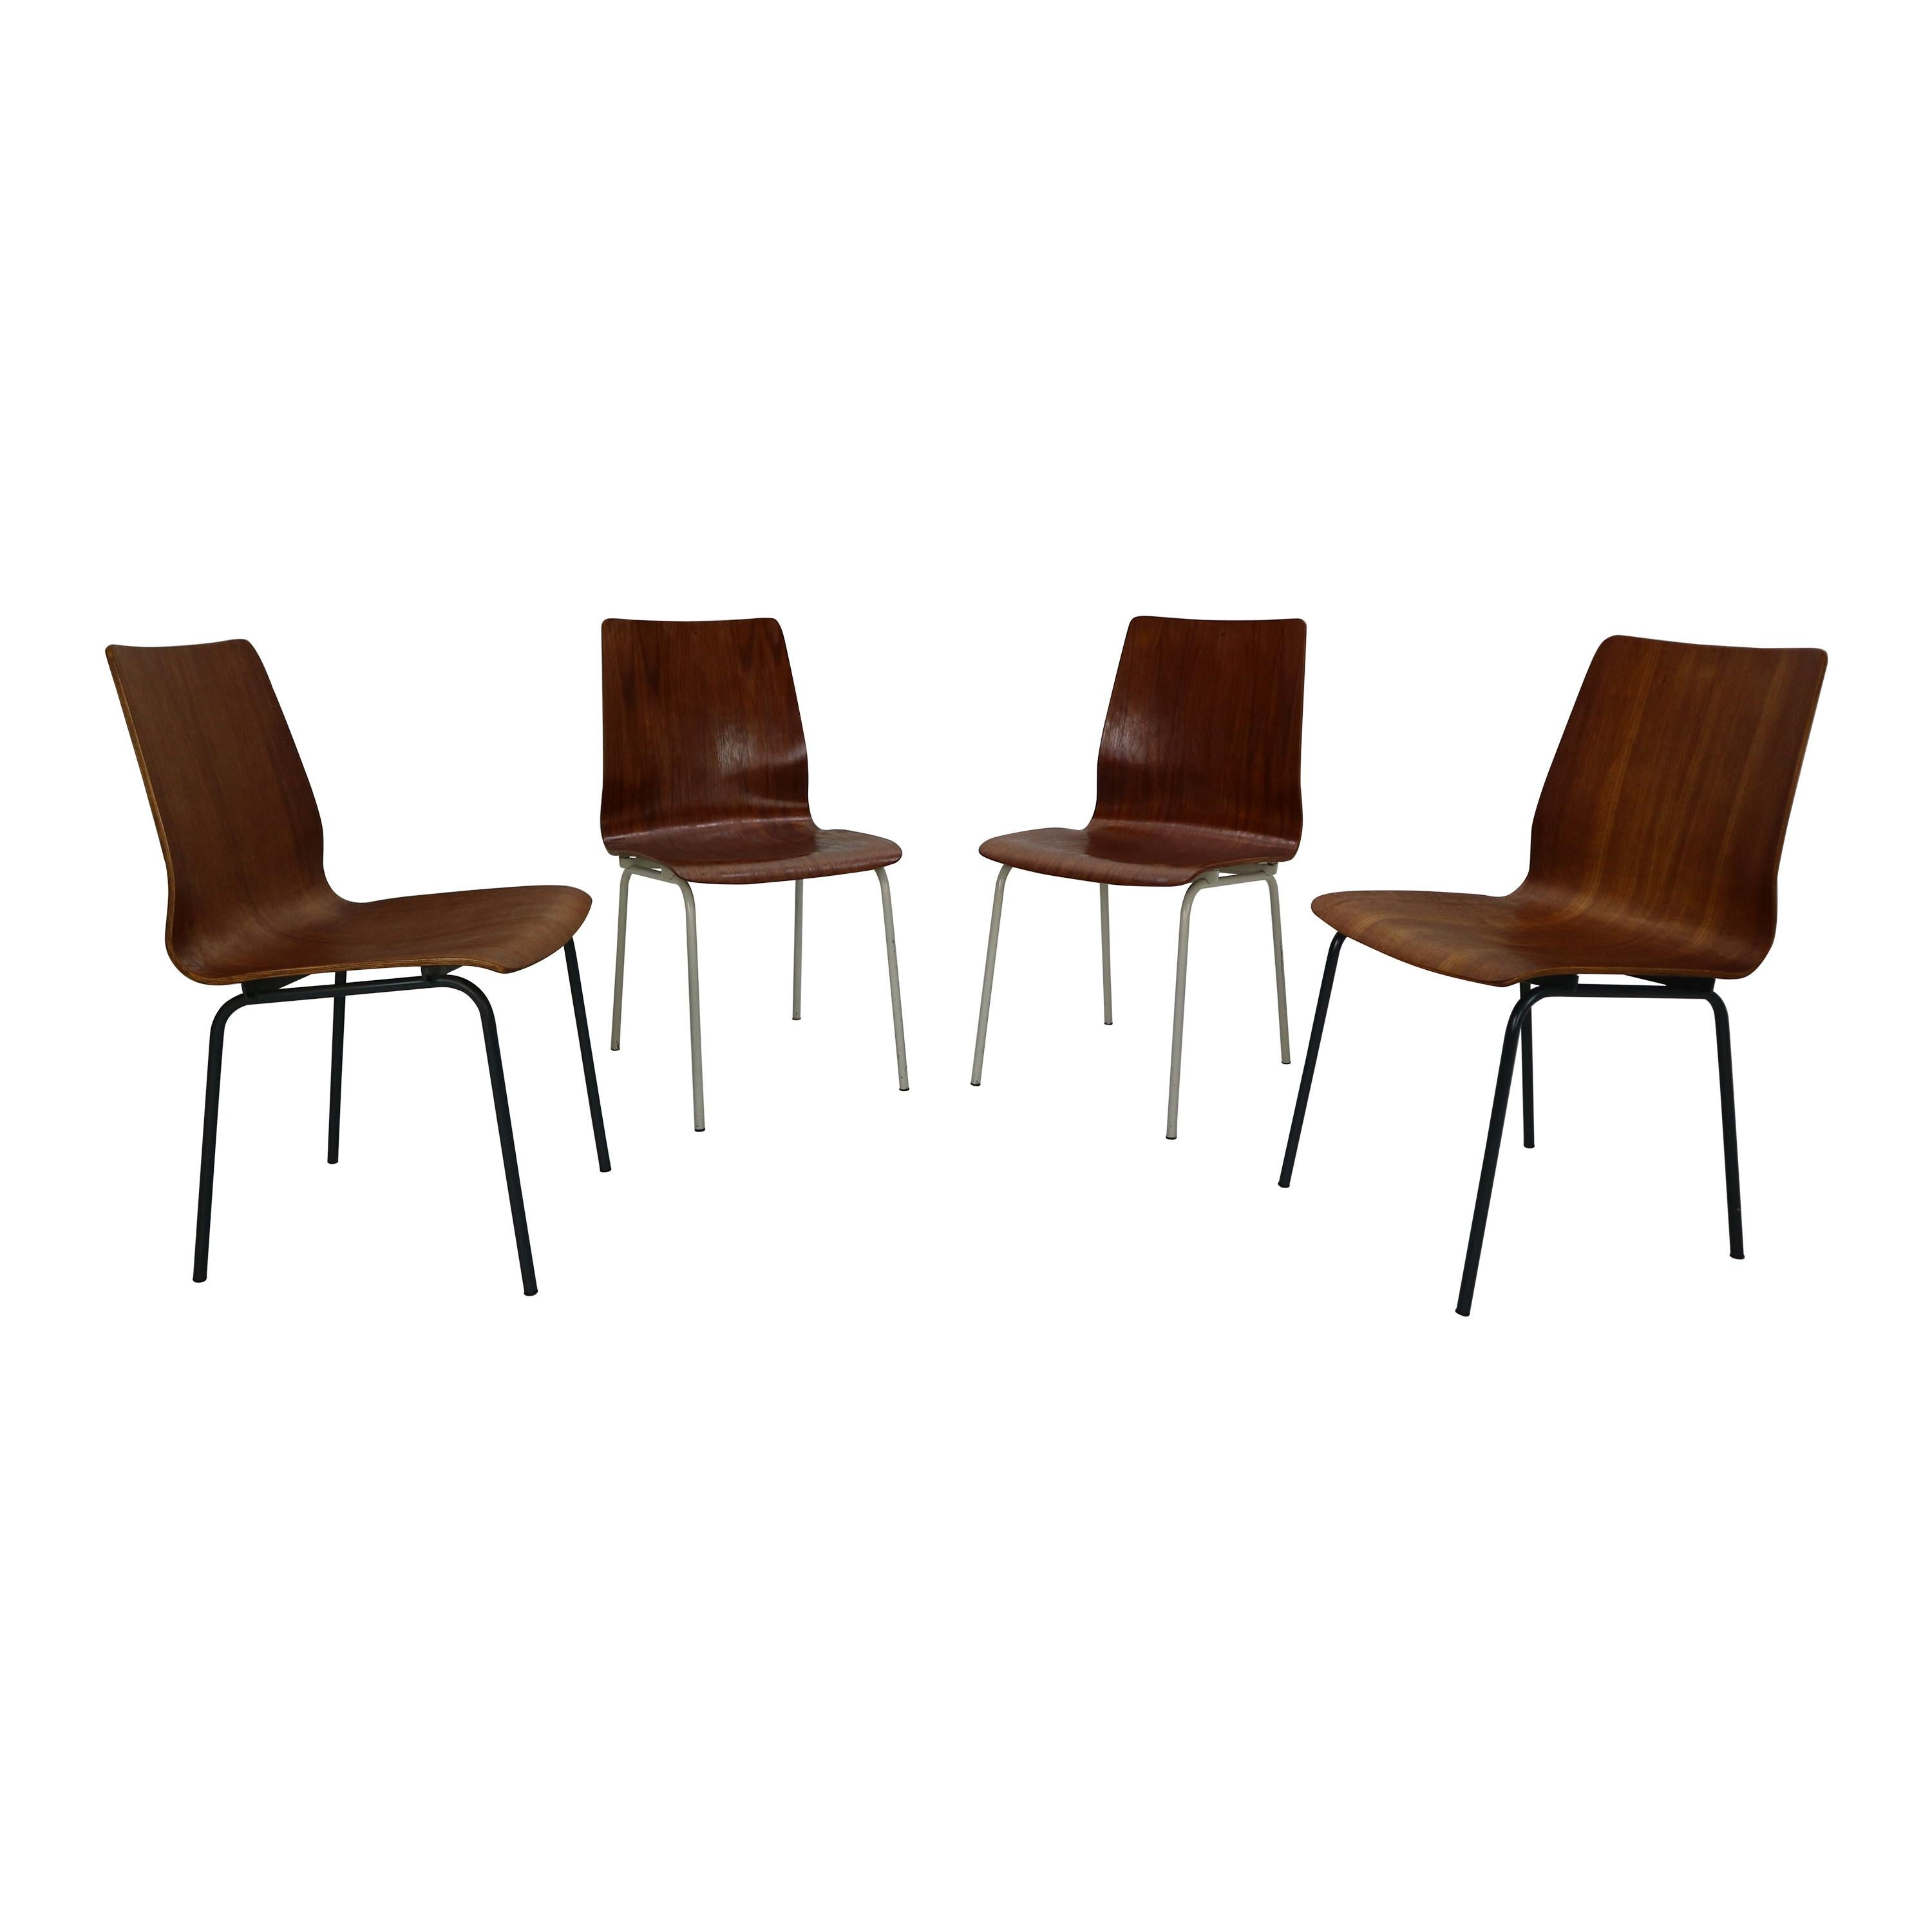 """Set of 4 Teak Dinning Room Chairs """"Euroika"""" by Fristo Kramer for Auping, 1950s"""